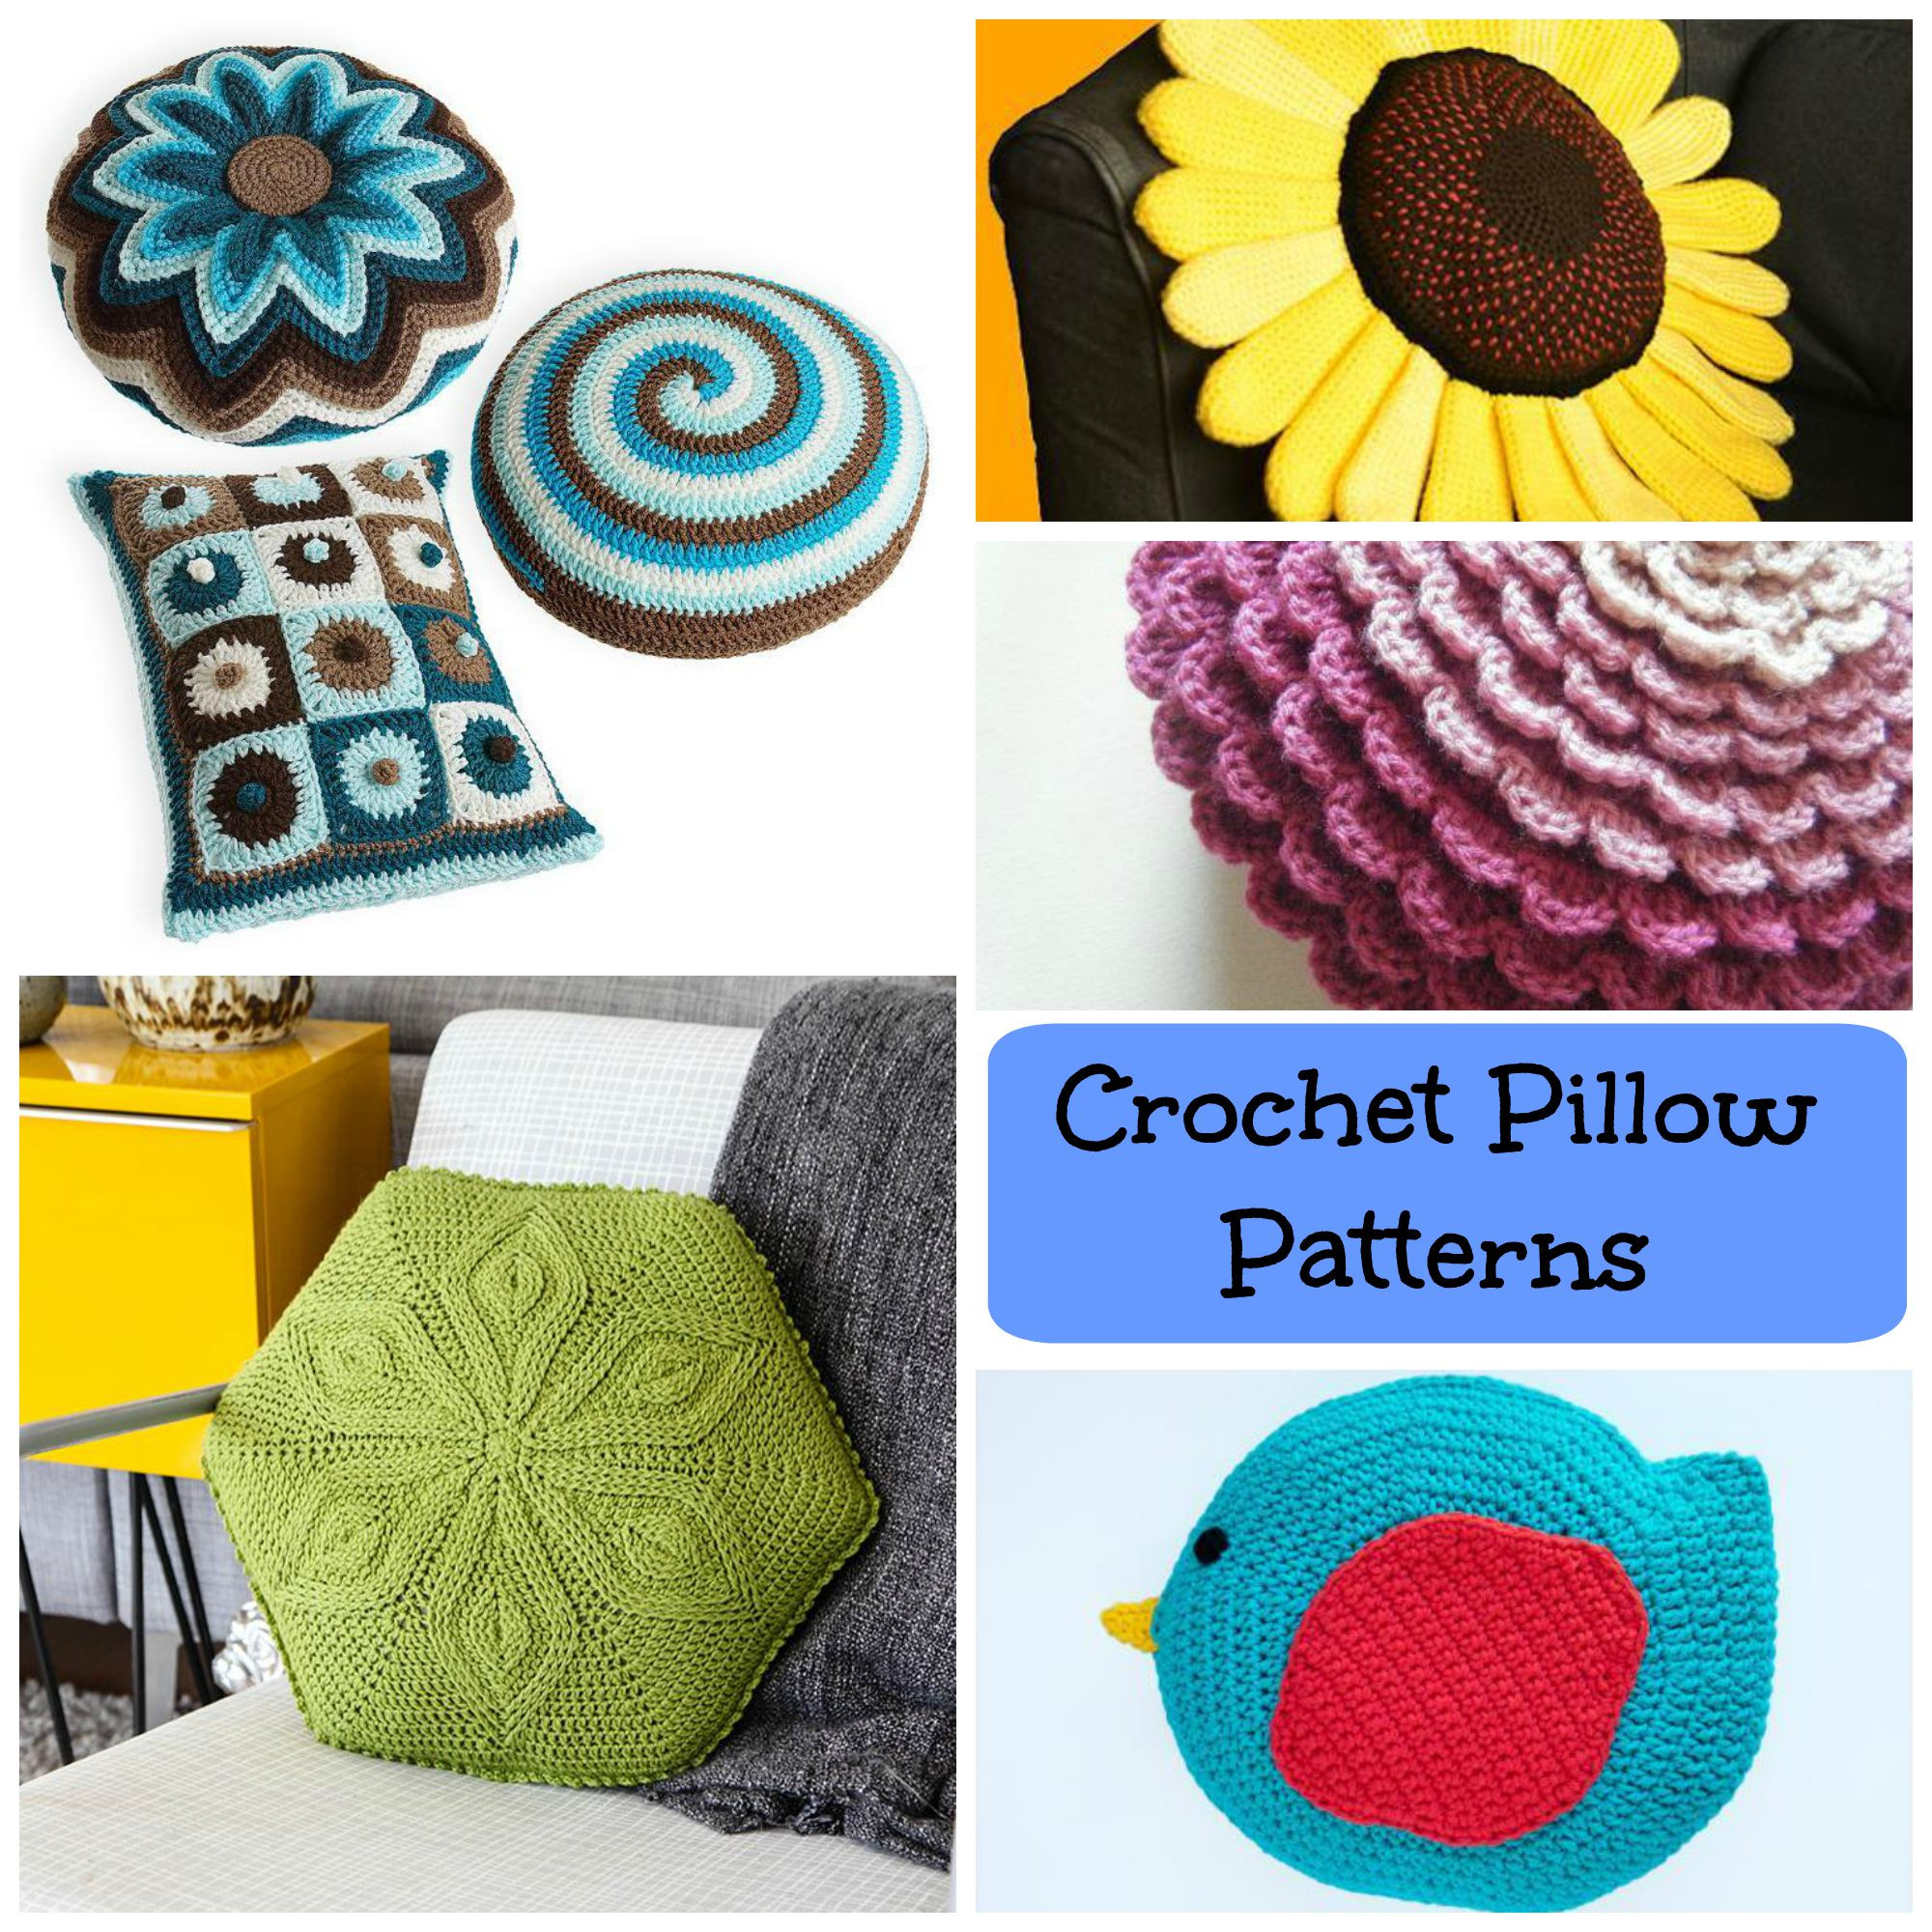 Crochet Pillow Elegant Crochet Pillow Patterns to Cozy Up Your Home Of Superb 50 Images Crochet Pillow